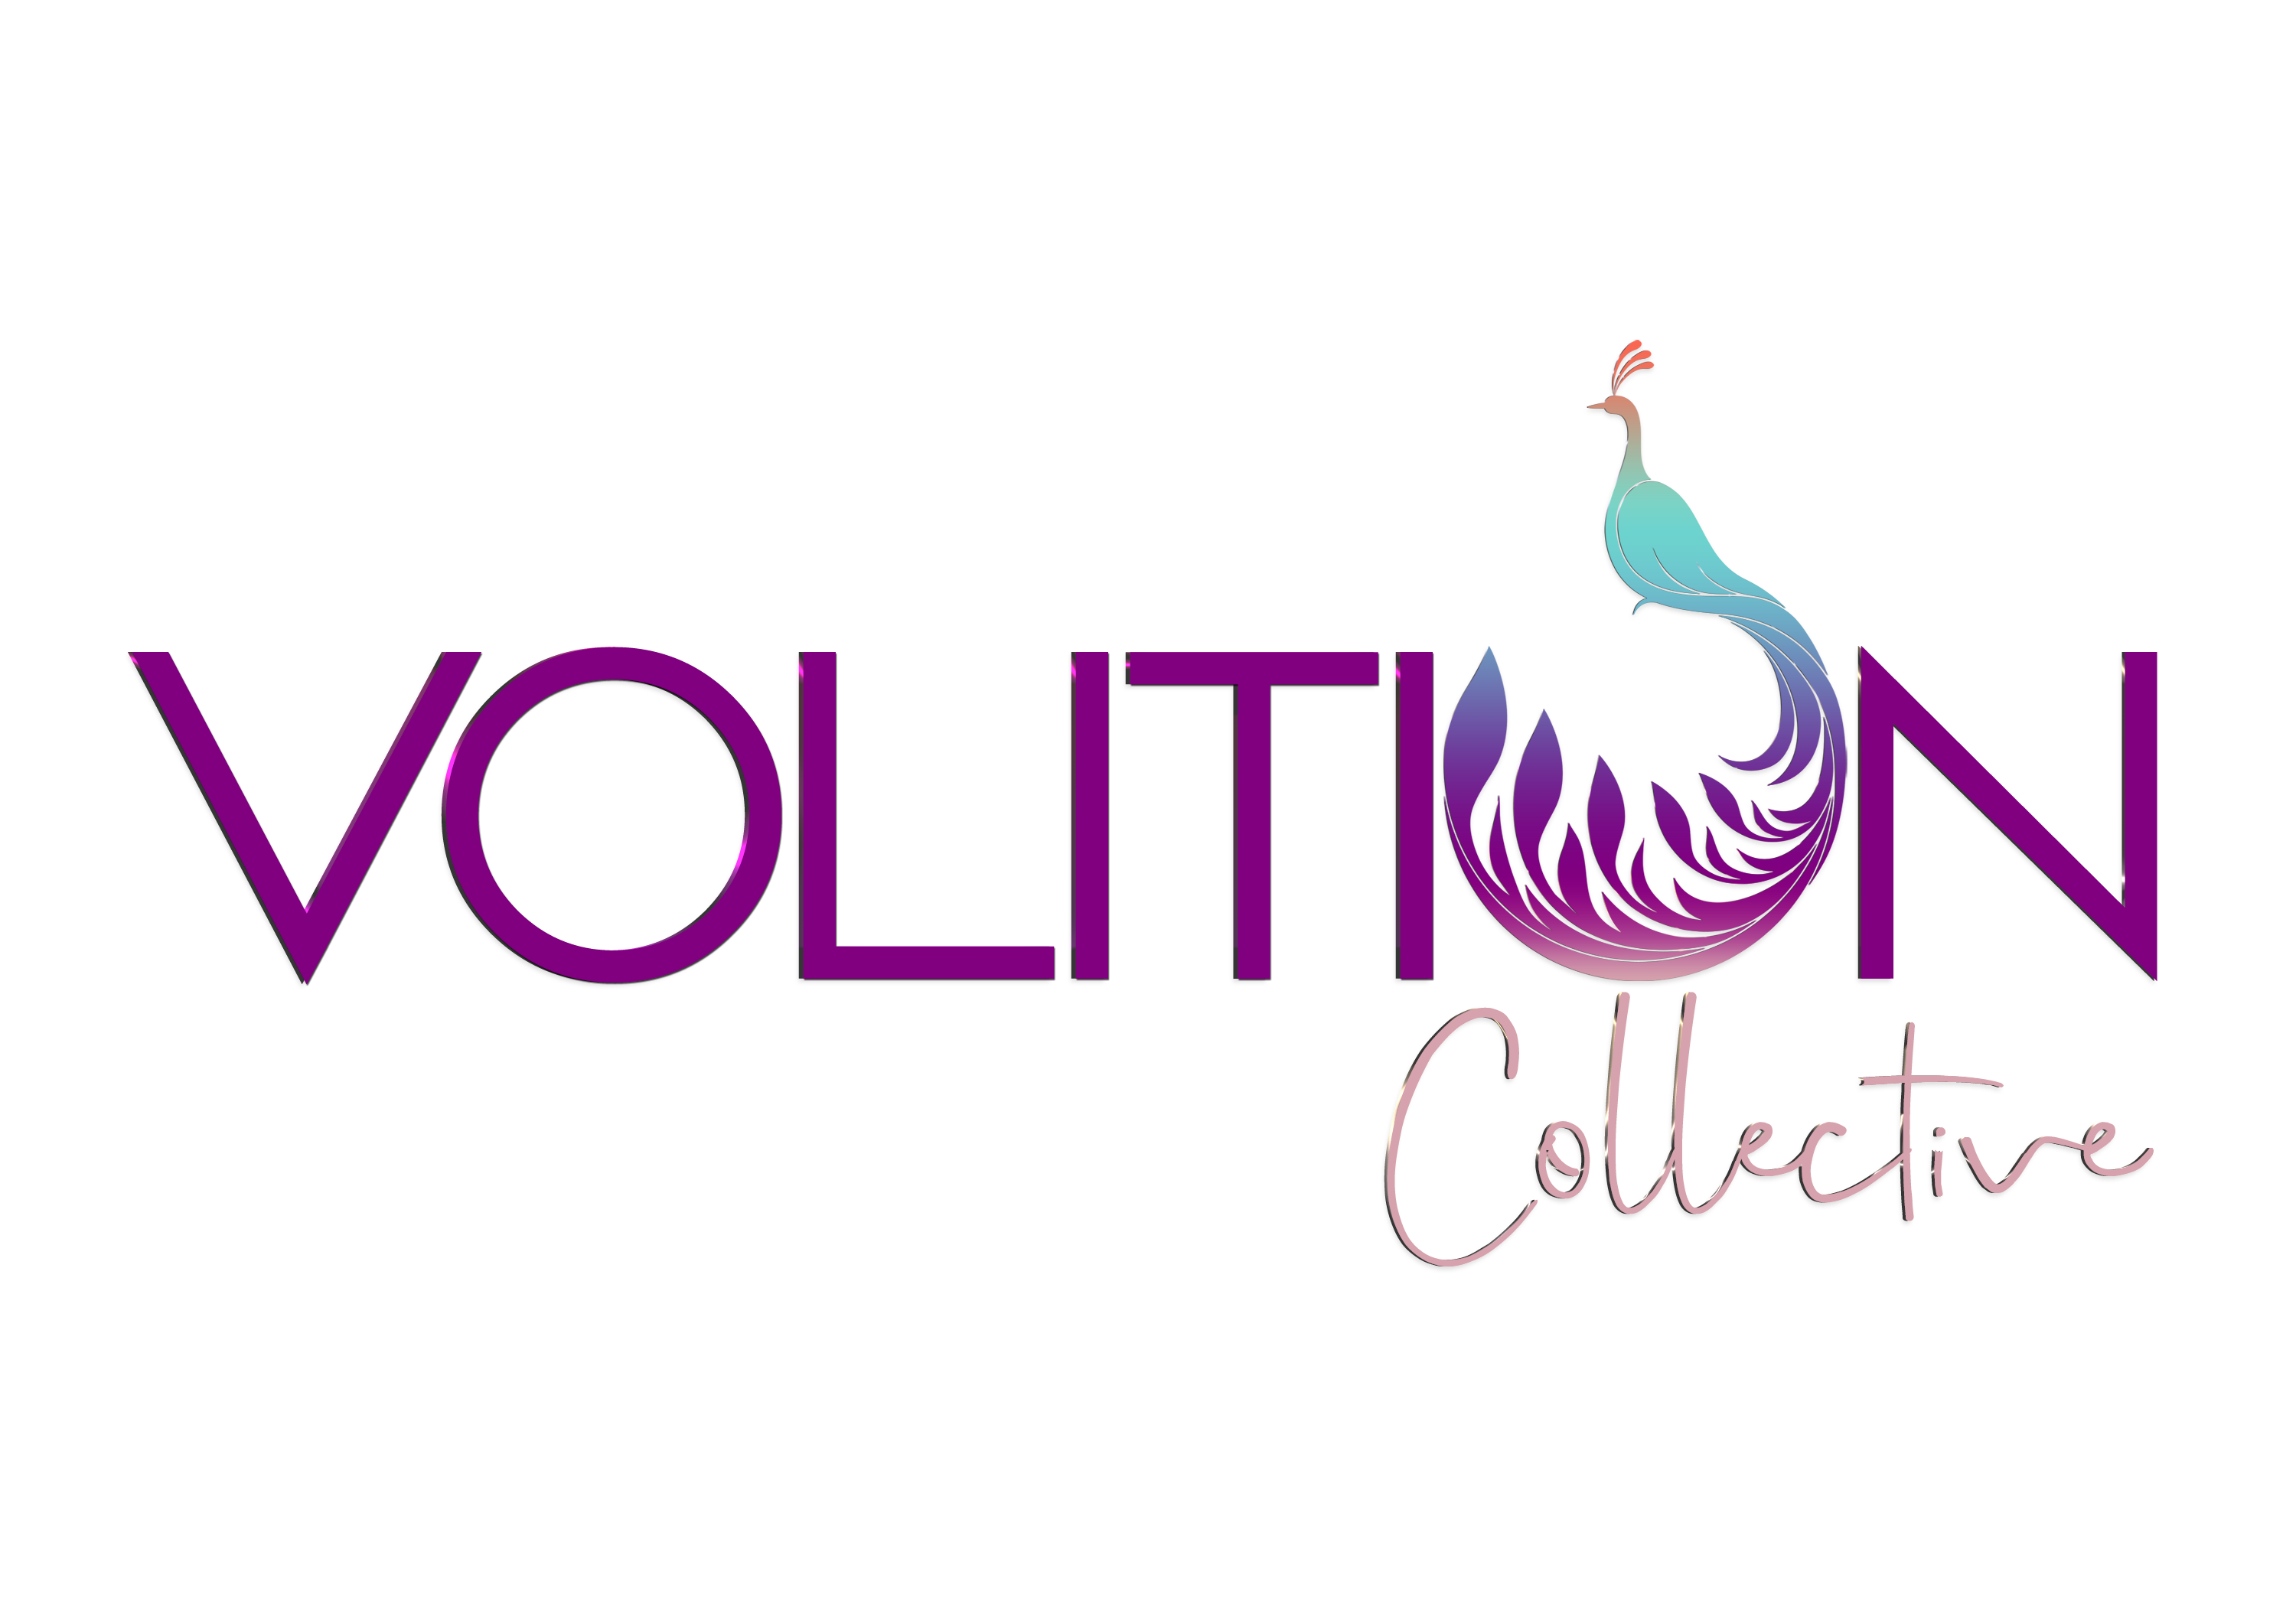 The Volition Collective | Counseling and Wellness Group